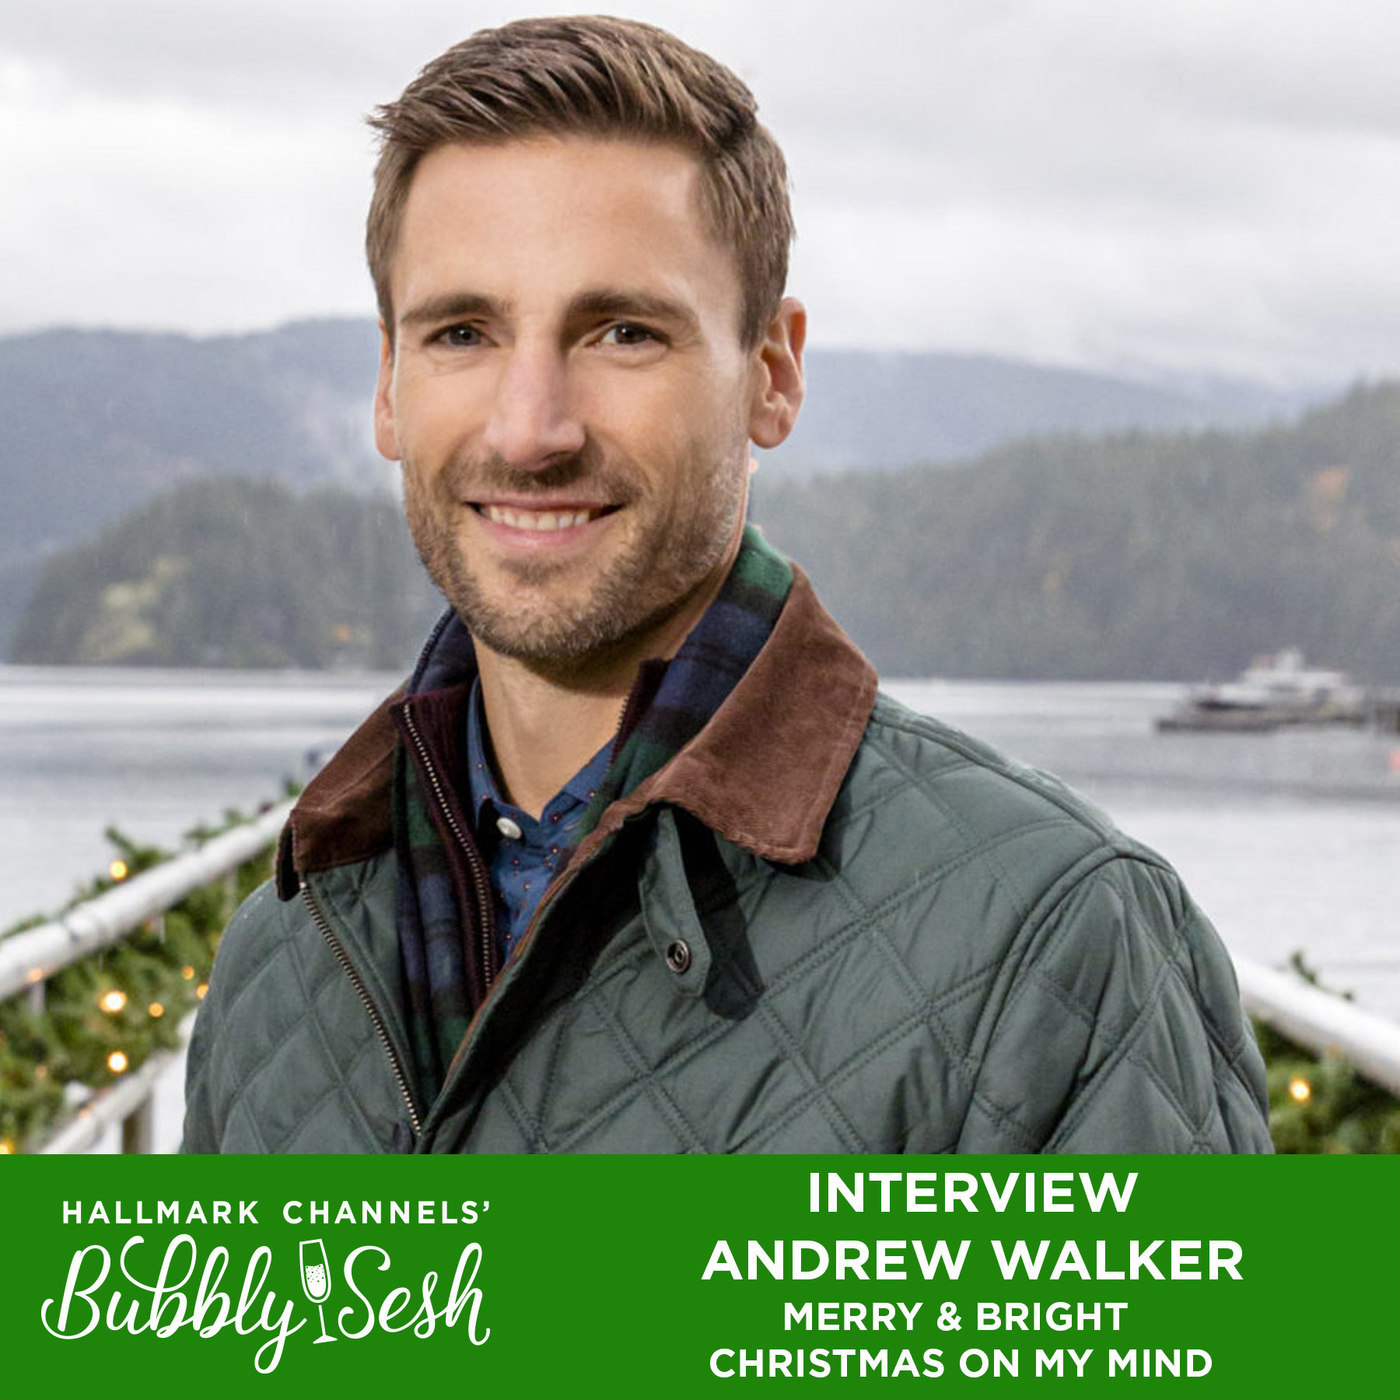 Andrew Walker Interview, Christmas on My Mind